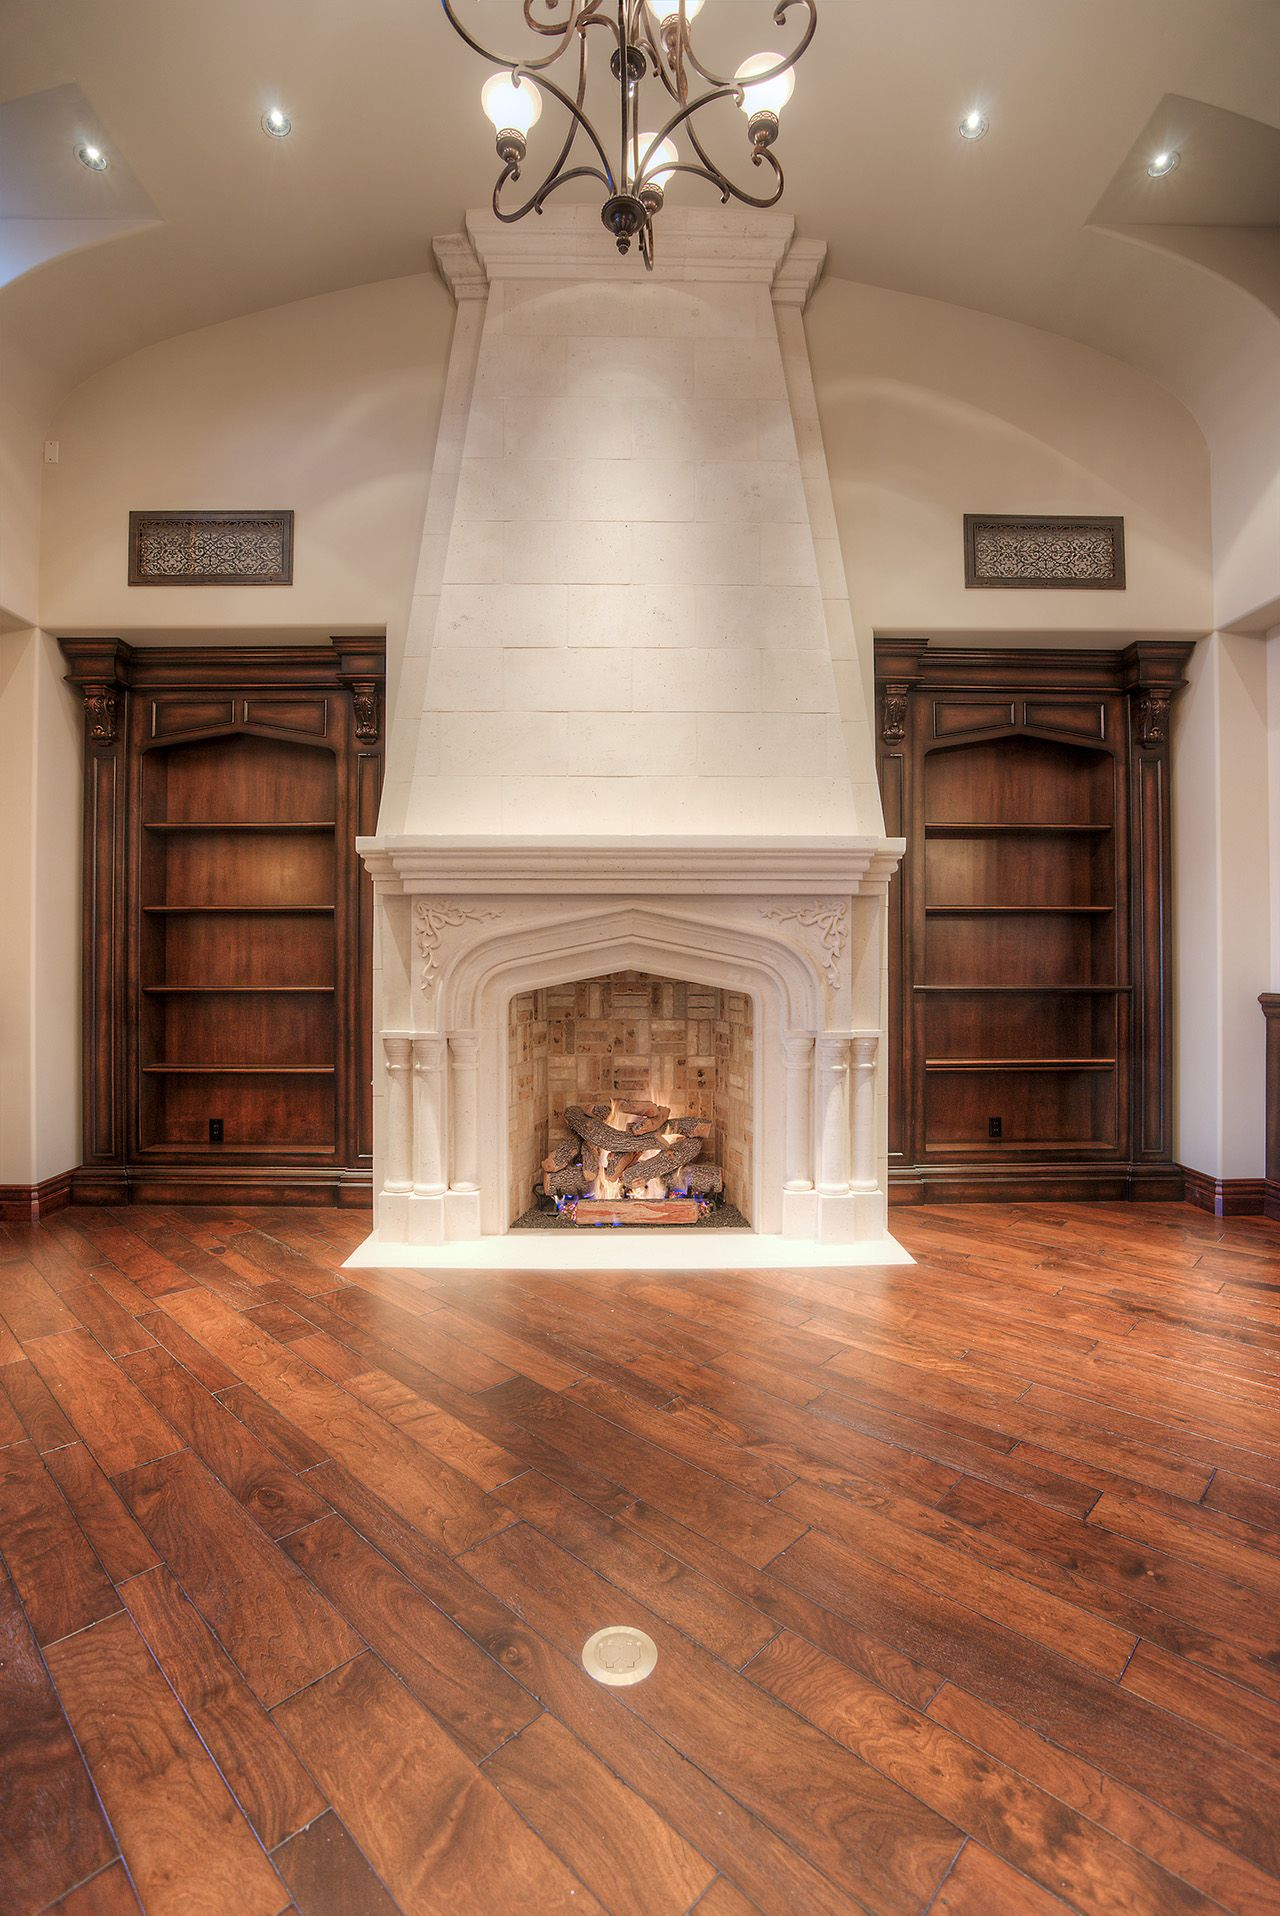 Elegant stone fireplace with built in wood book shelves on both